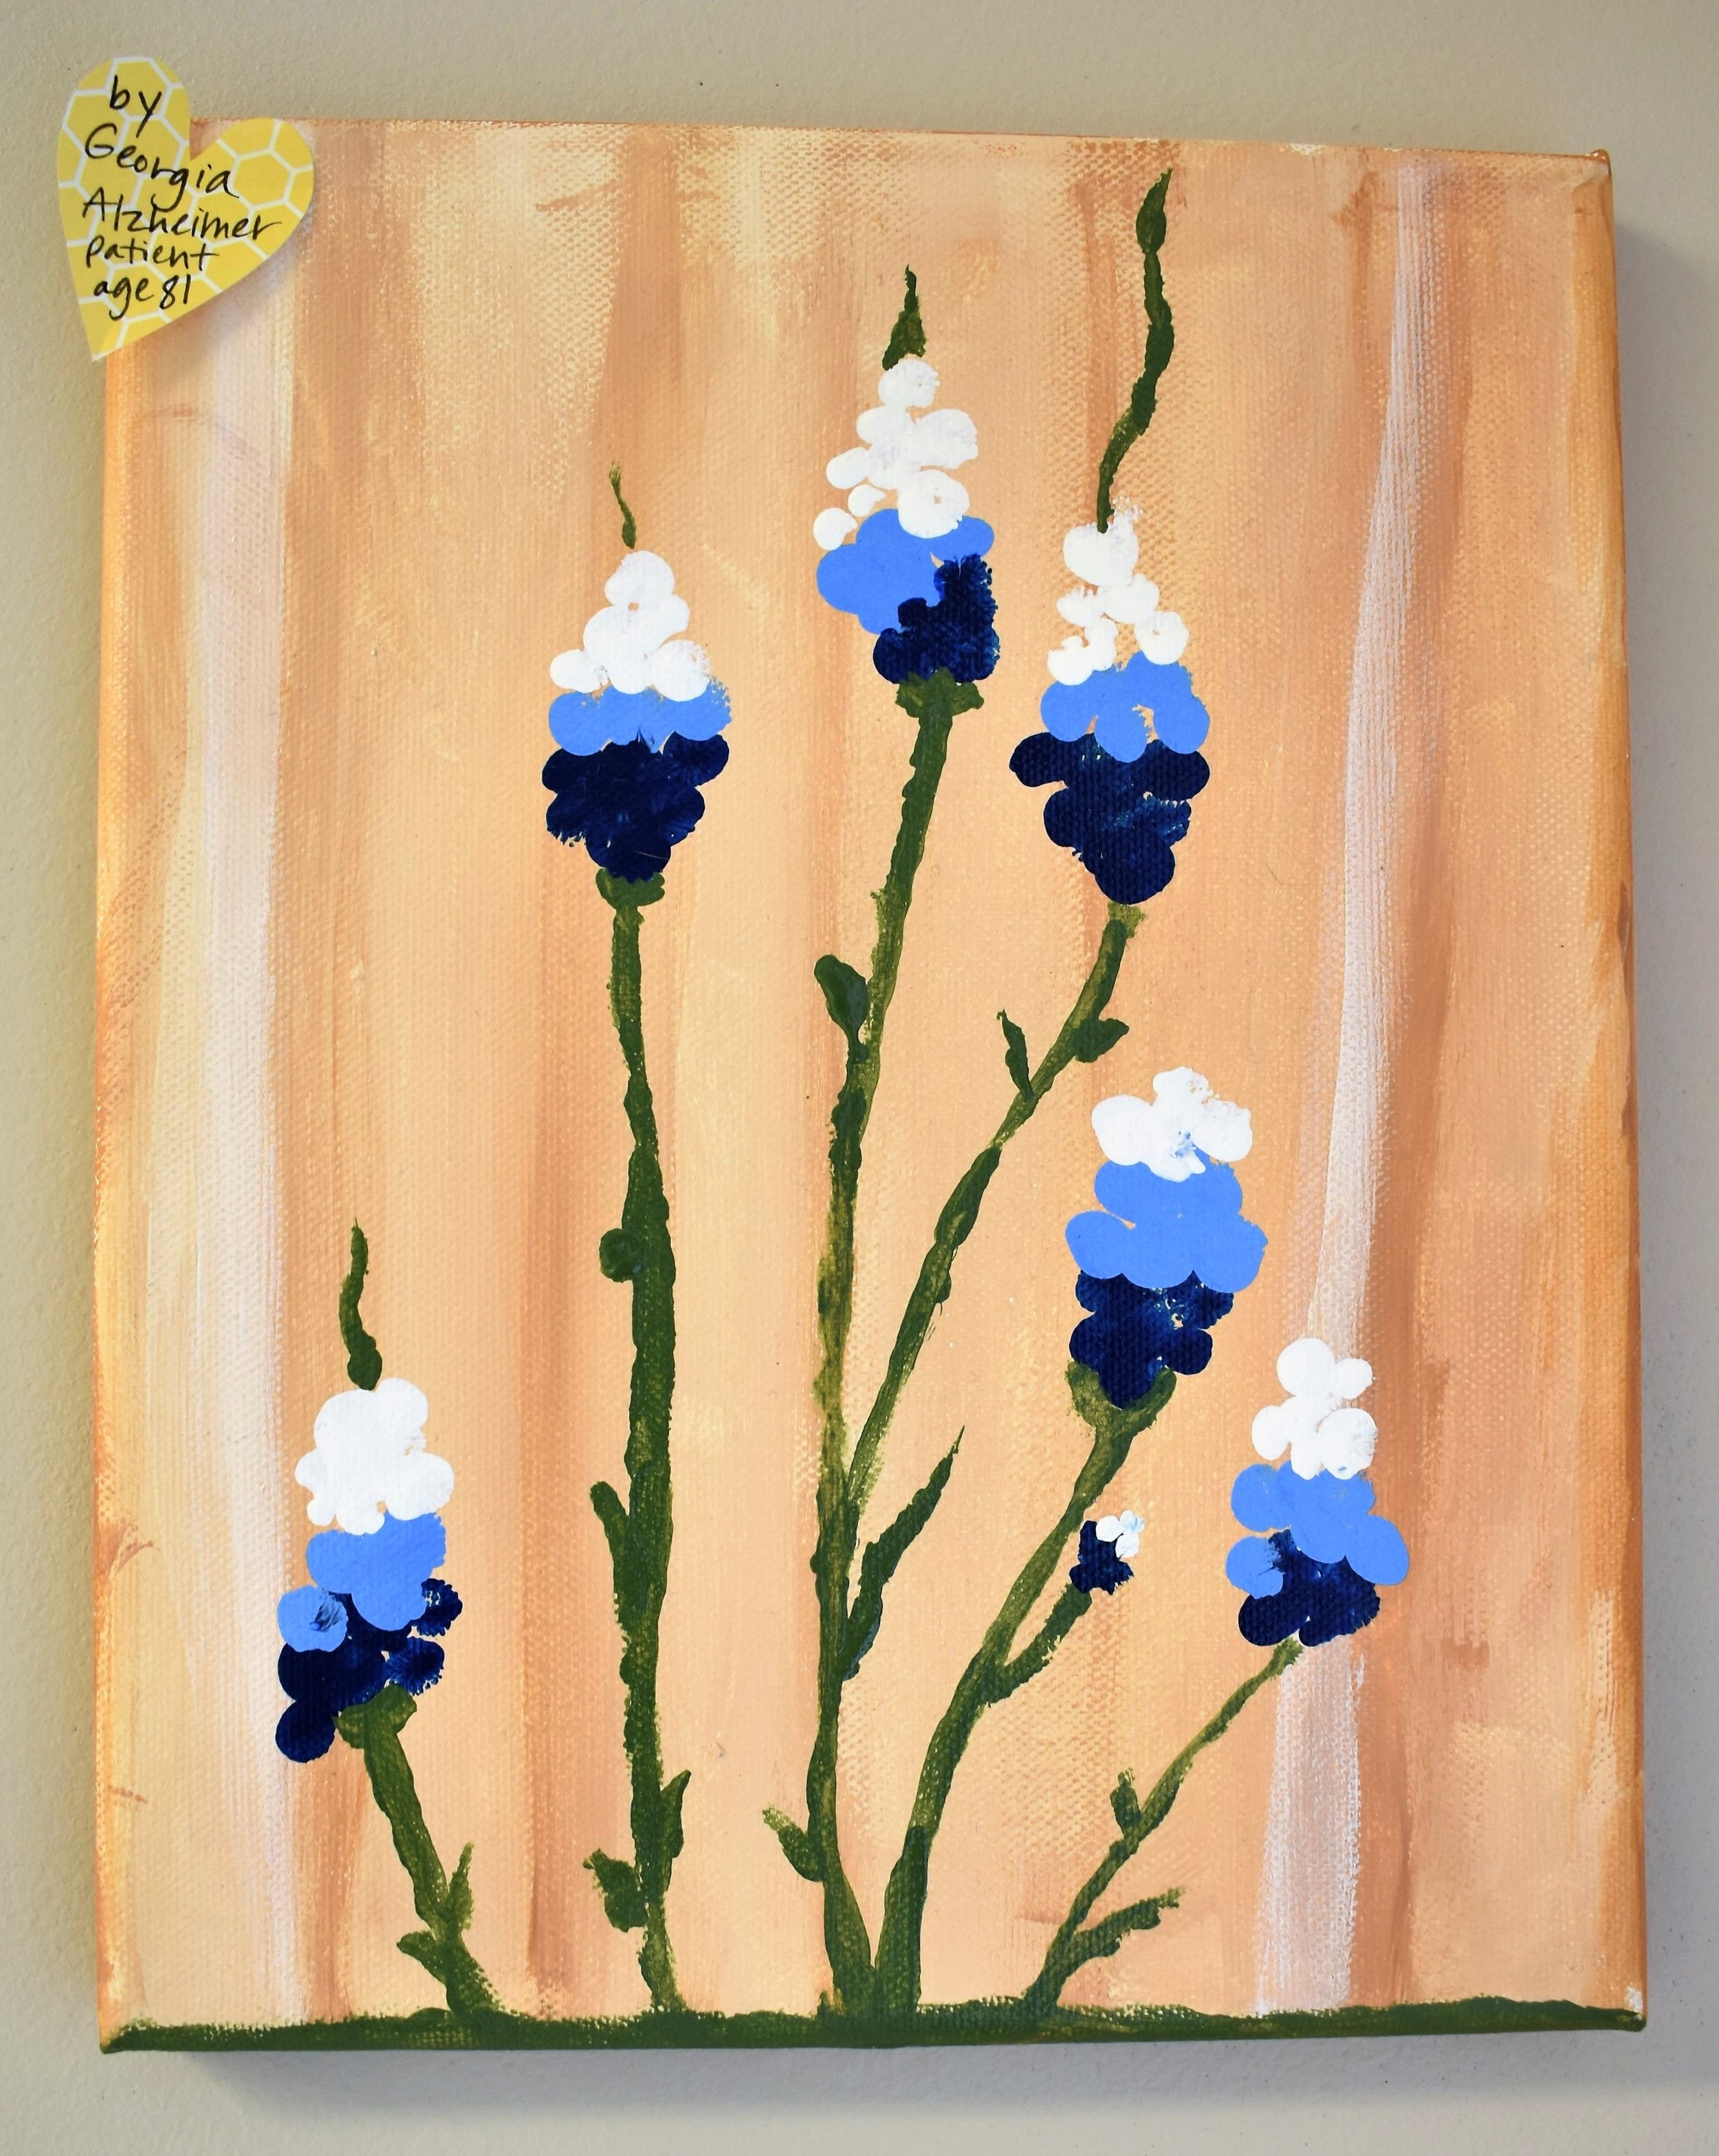 A piece of art painted by one of Gina's students, Georgia, an 81 year old Alzheimer's patient.